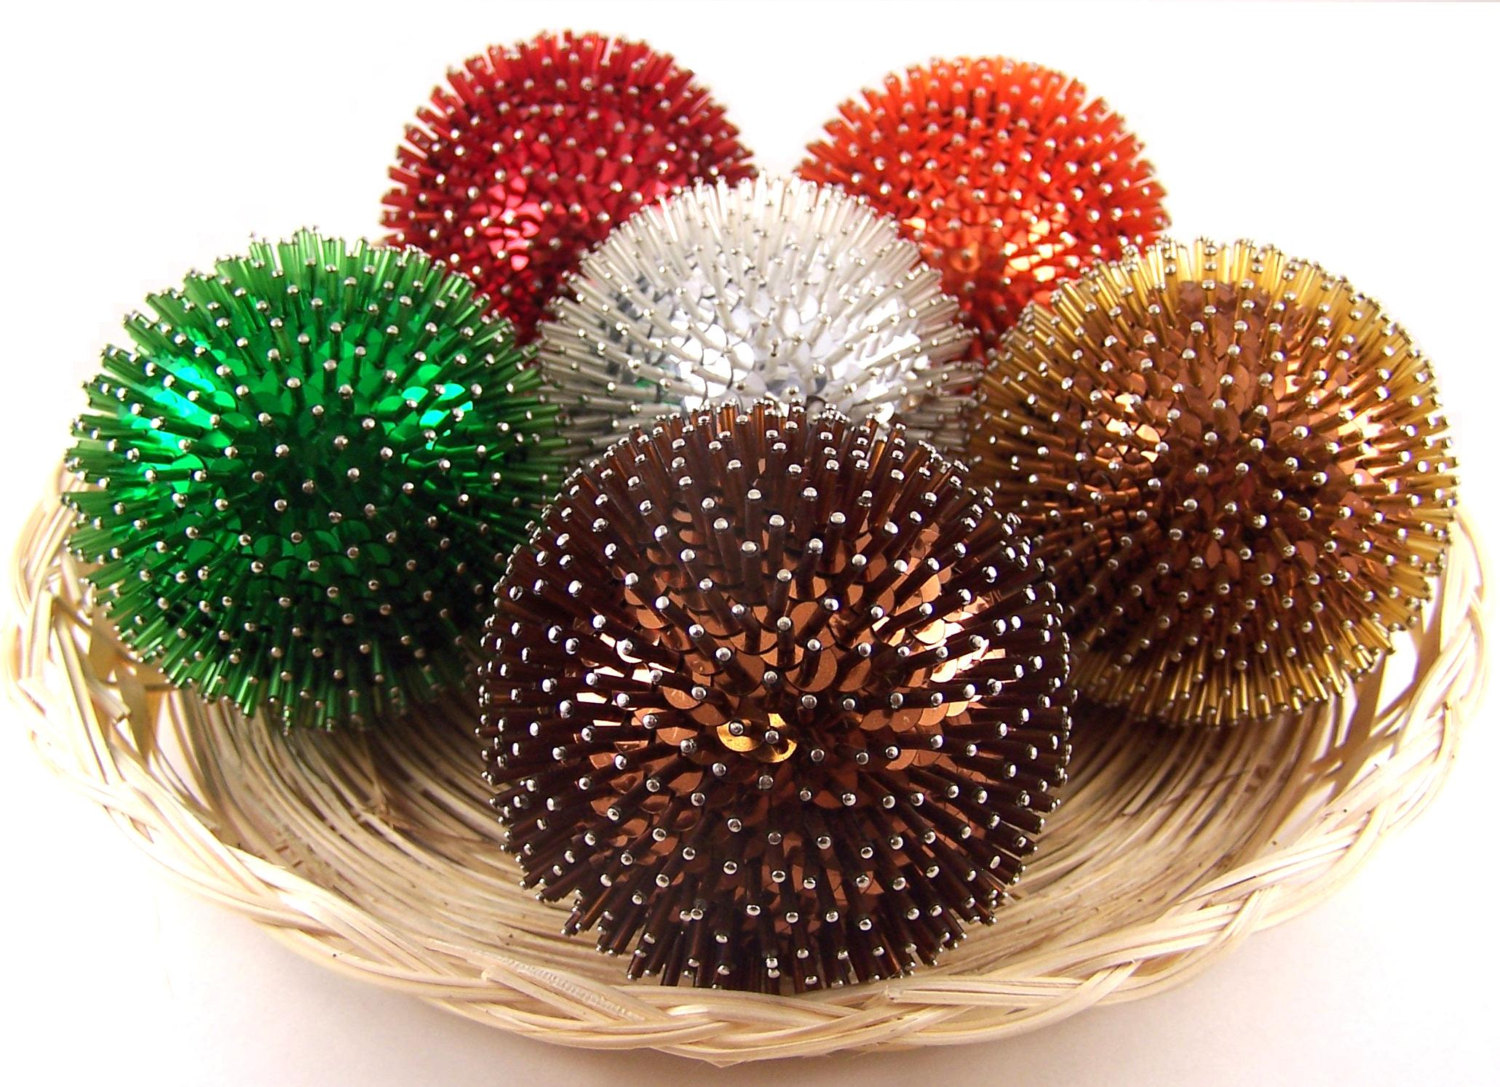 Popular items of decorative orbs in multicolor for table accessories ideas